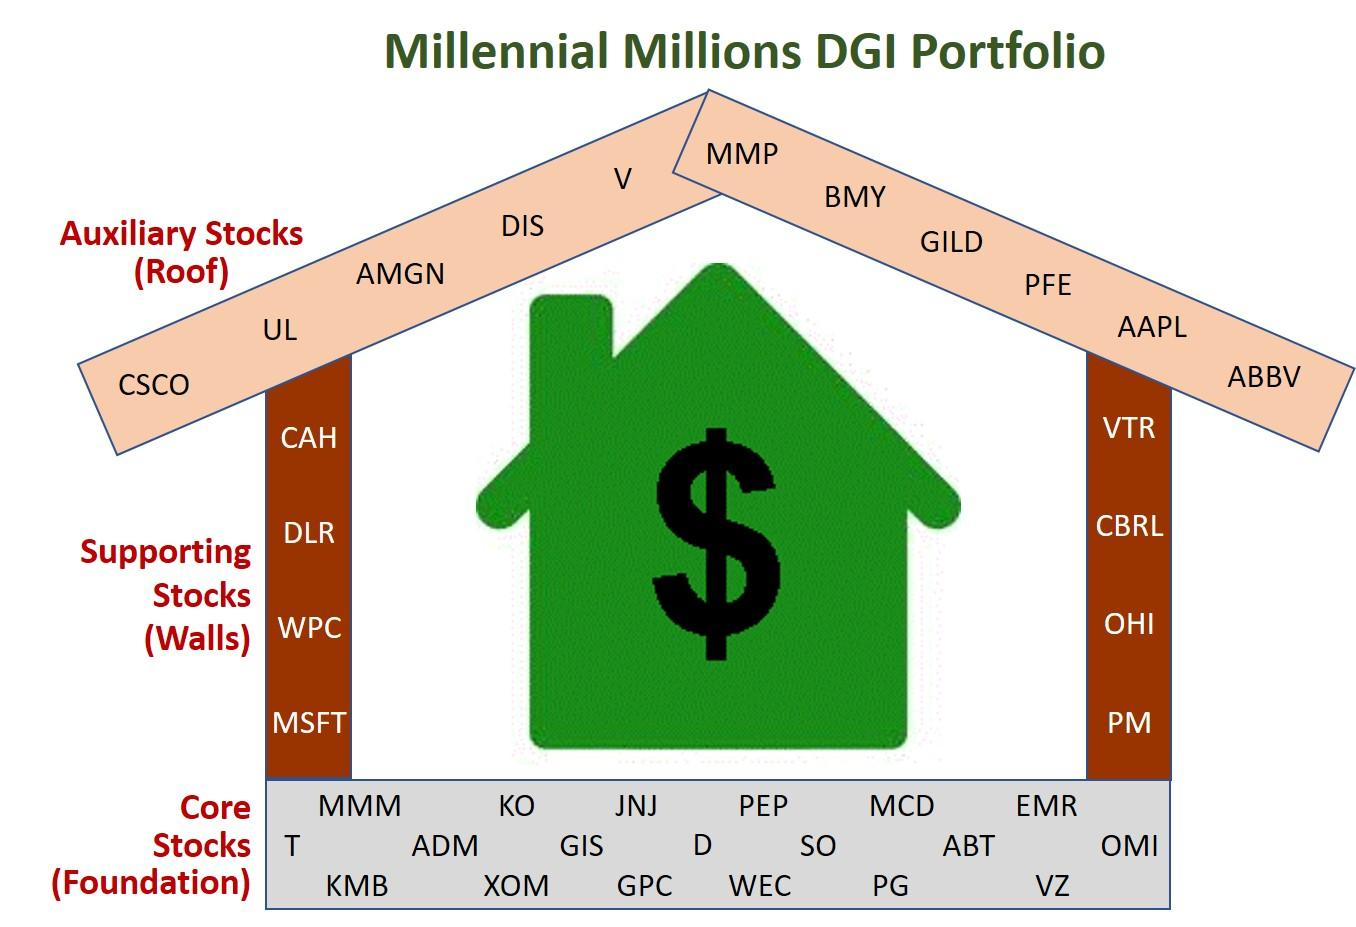 Repairing The Foundations Of The Dividend House And Millennial